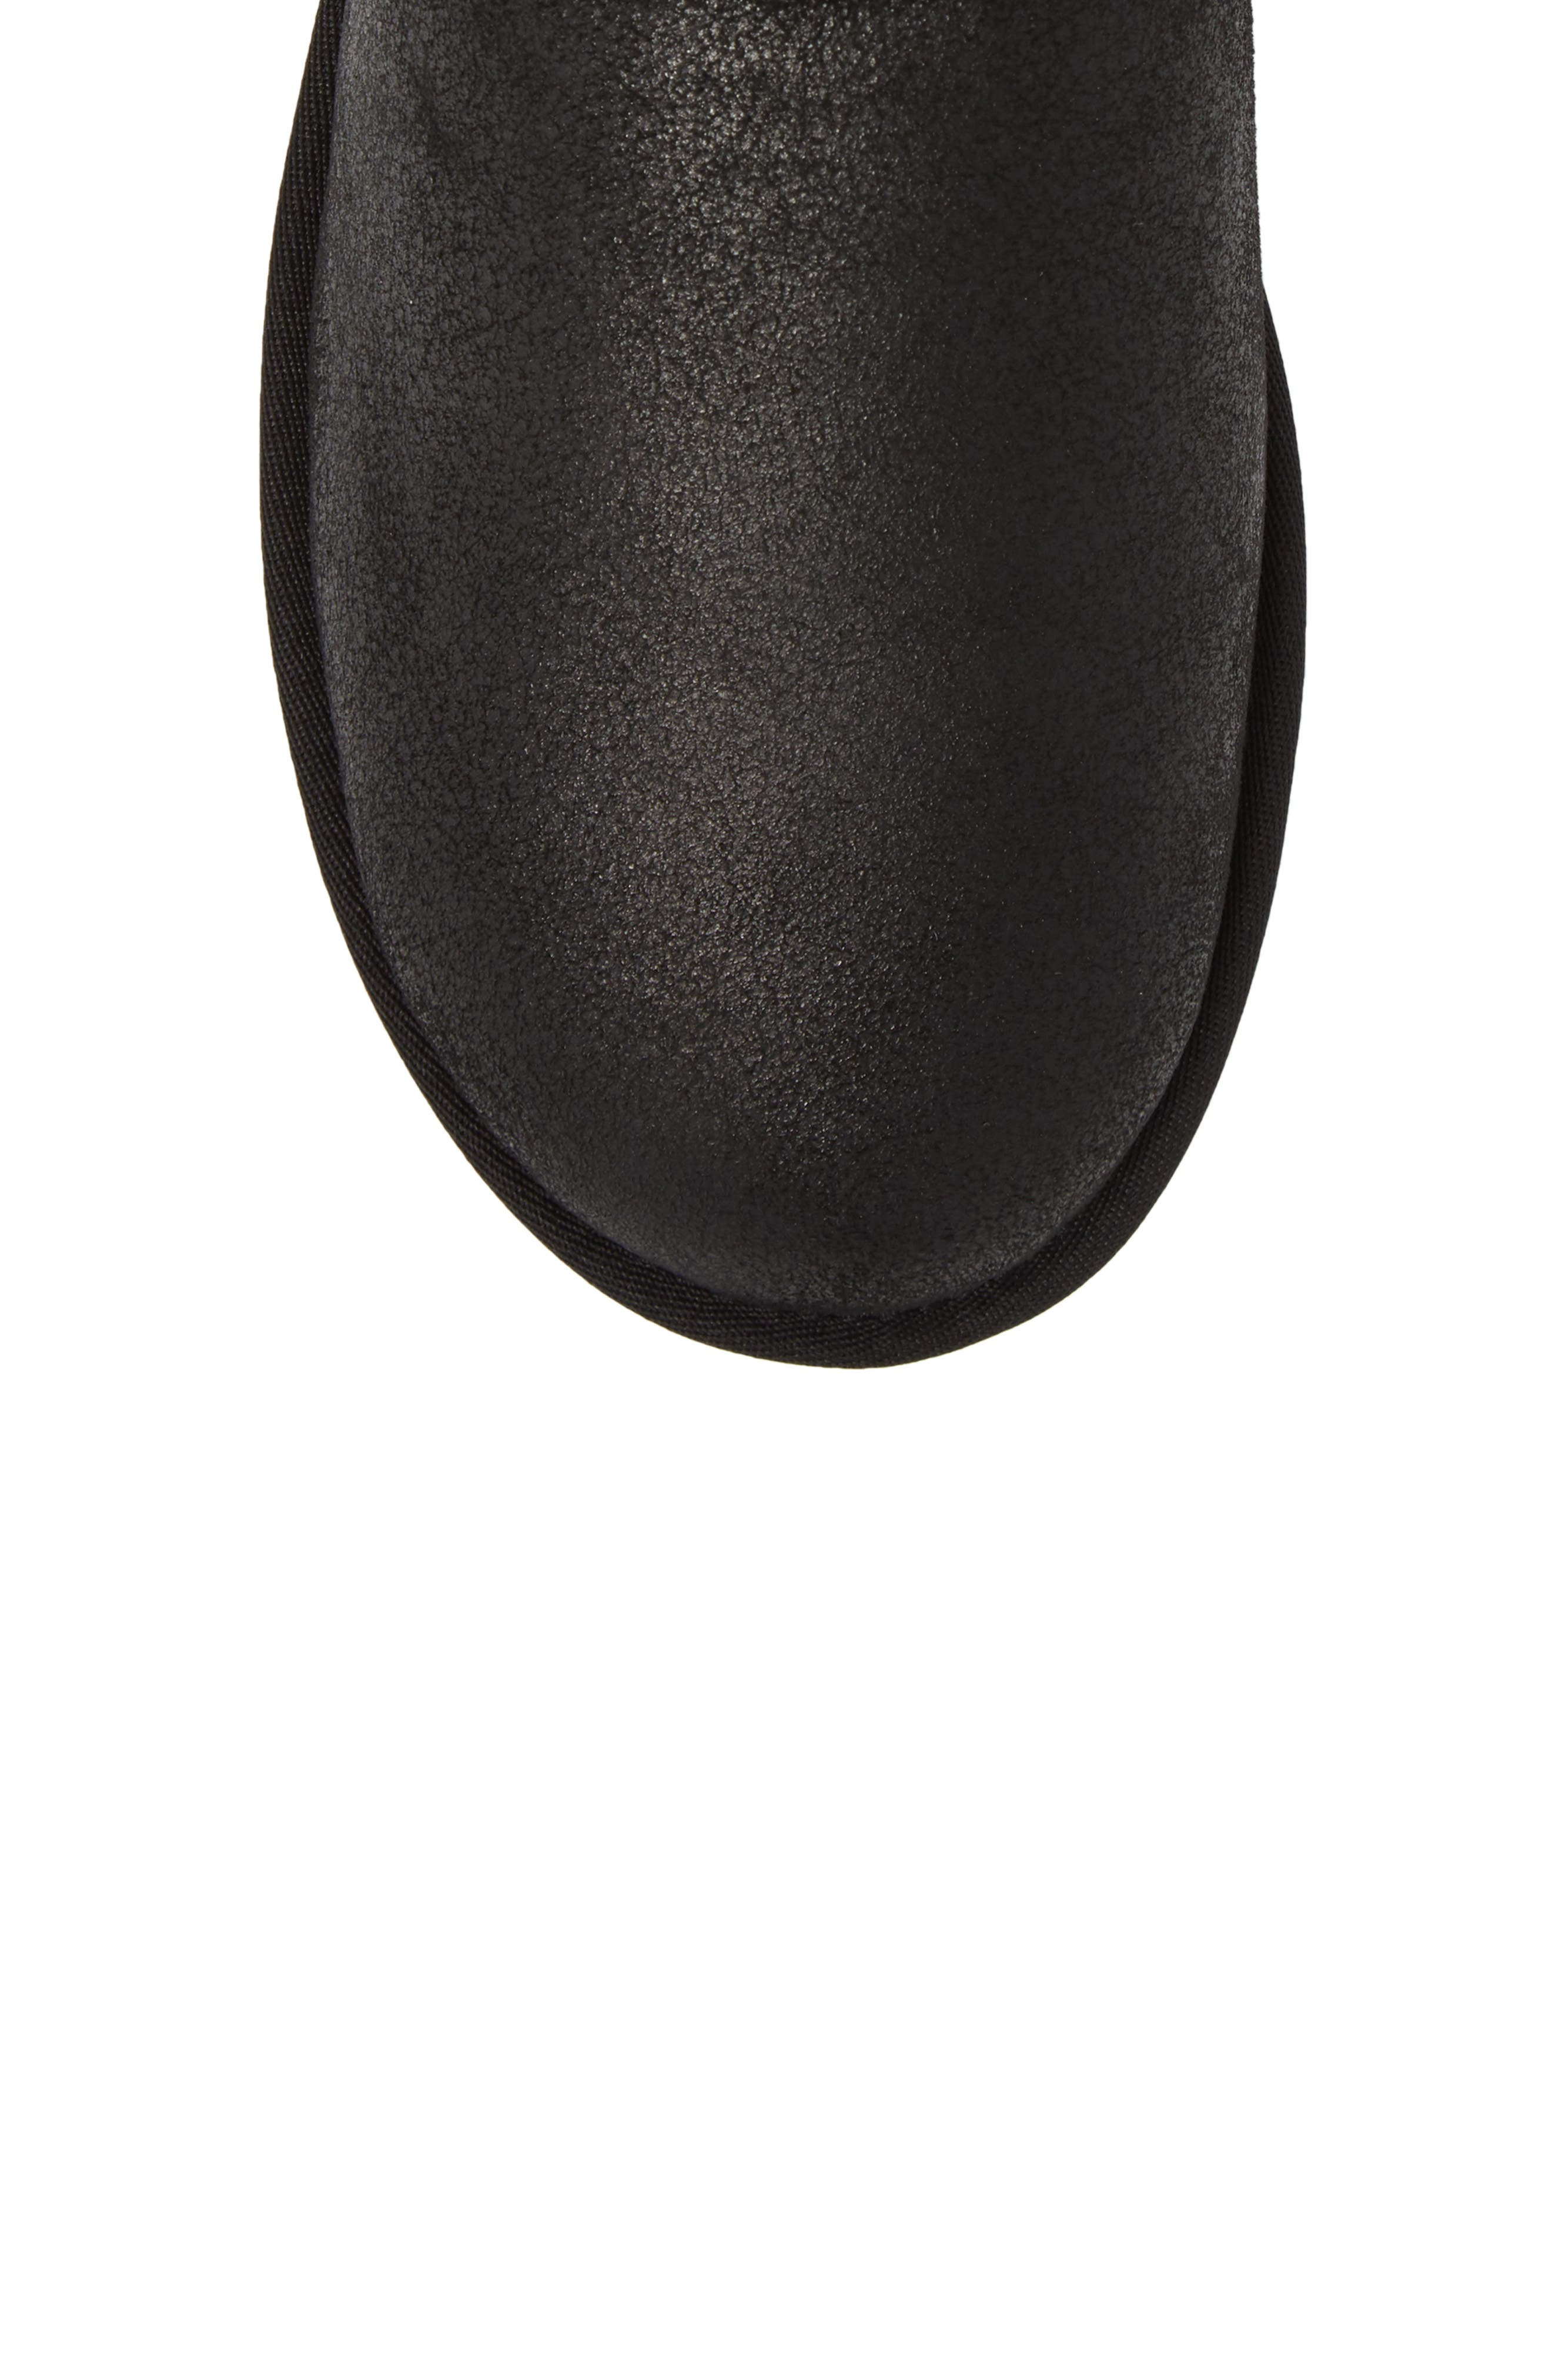 Classic Mini Bomber Boot with Genuine Shearling or UGGpure<sup>™</sup> Lining,                             Alternate thumbnail 5, color,                             BOMBER JACKET BLACK